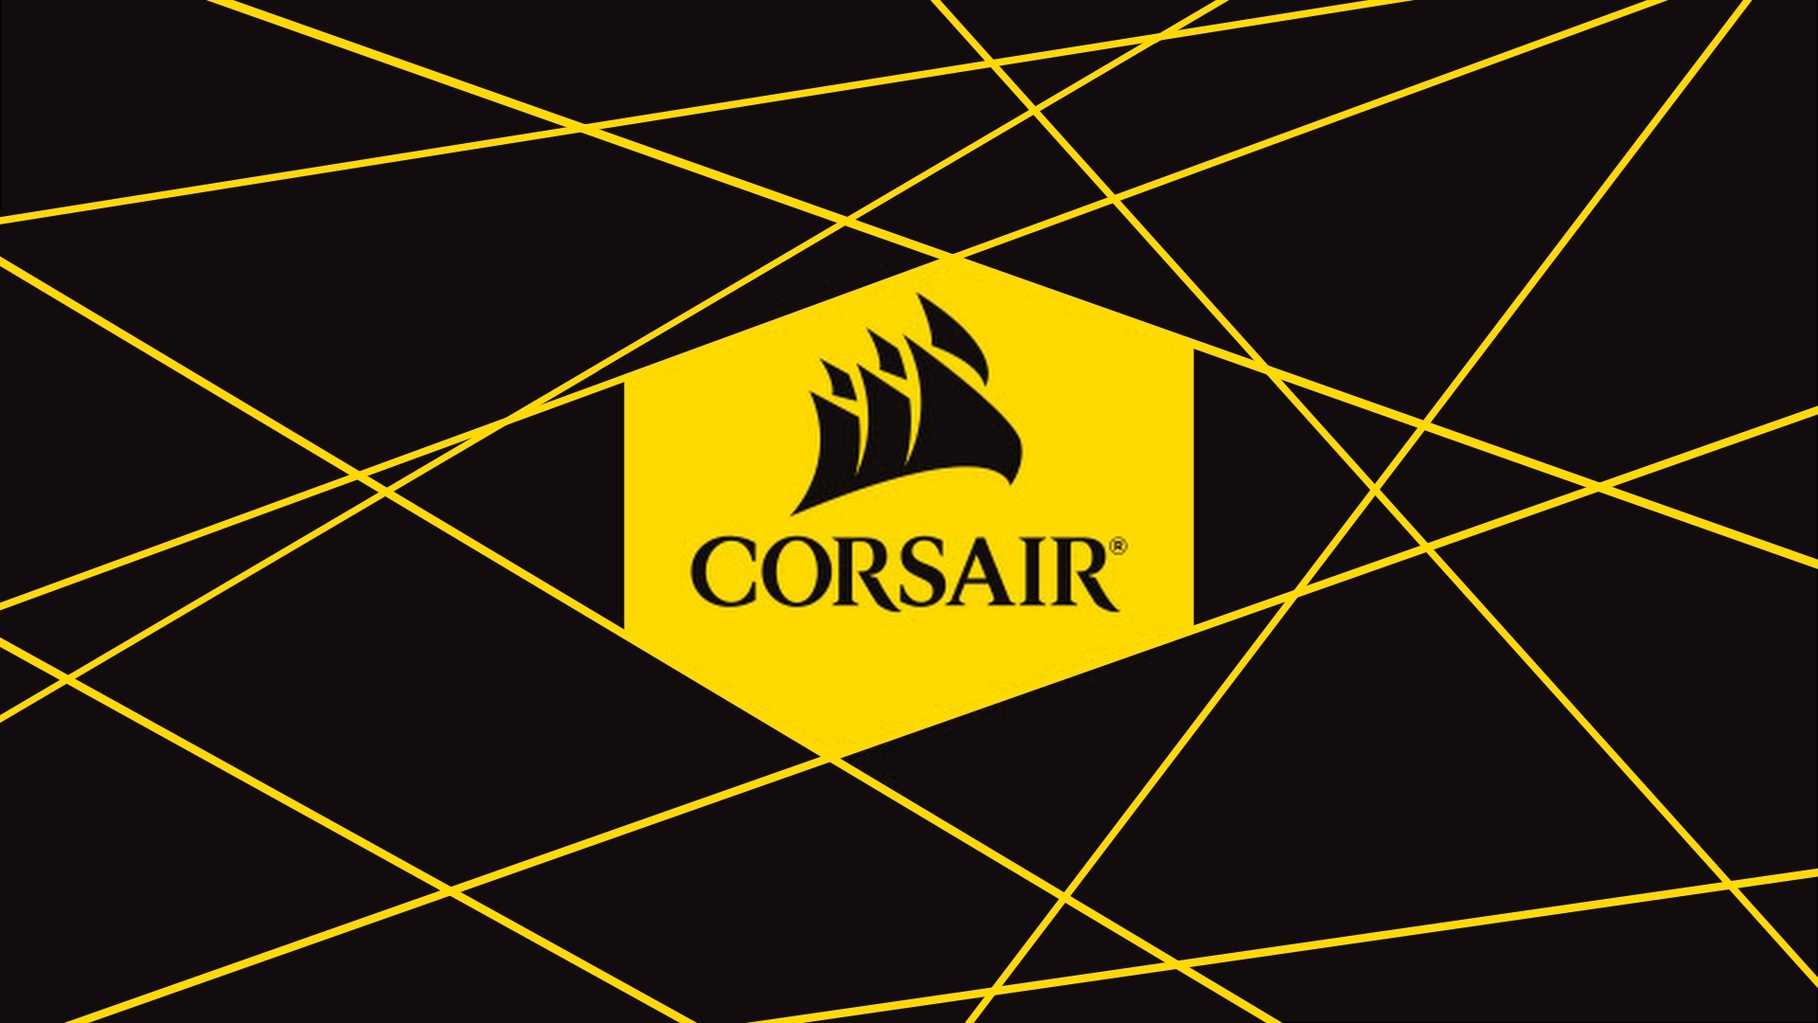 Corsair Wallpaper: Tech Themed Wallpapers! And Anime Themed Ones Too